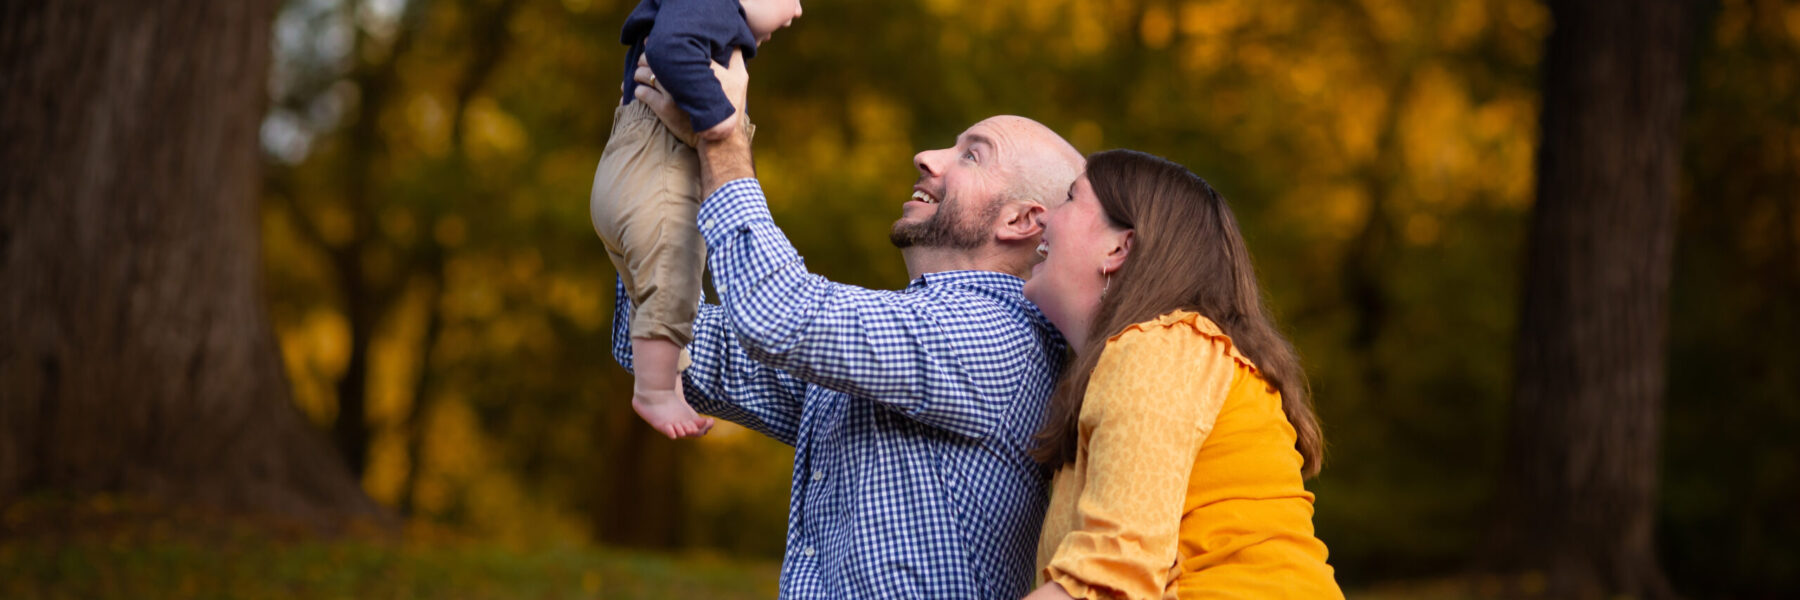 Fall Portraits: Burlington Family Photographer